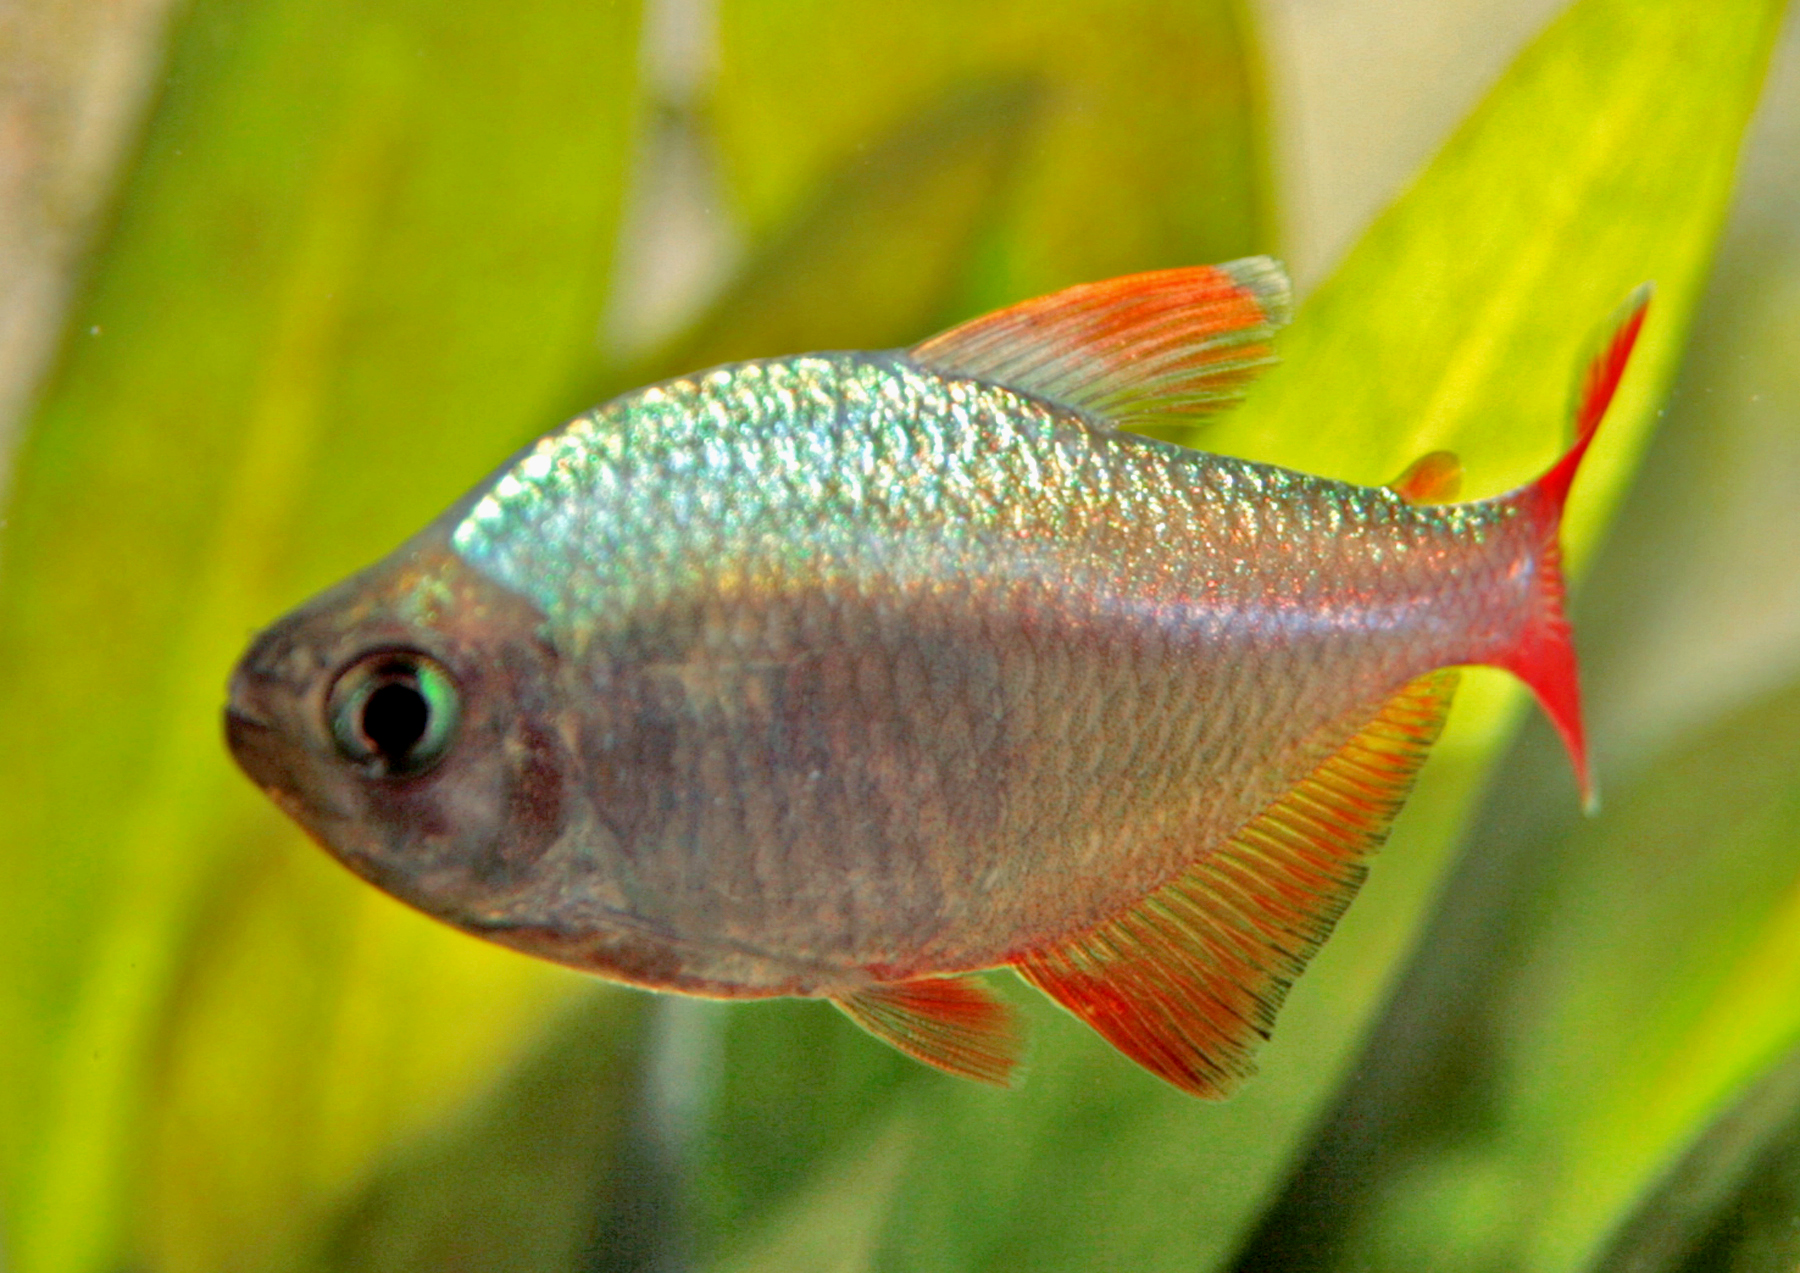 Tetra Fish Species Hyphessobrycon columbianus